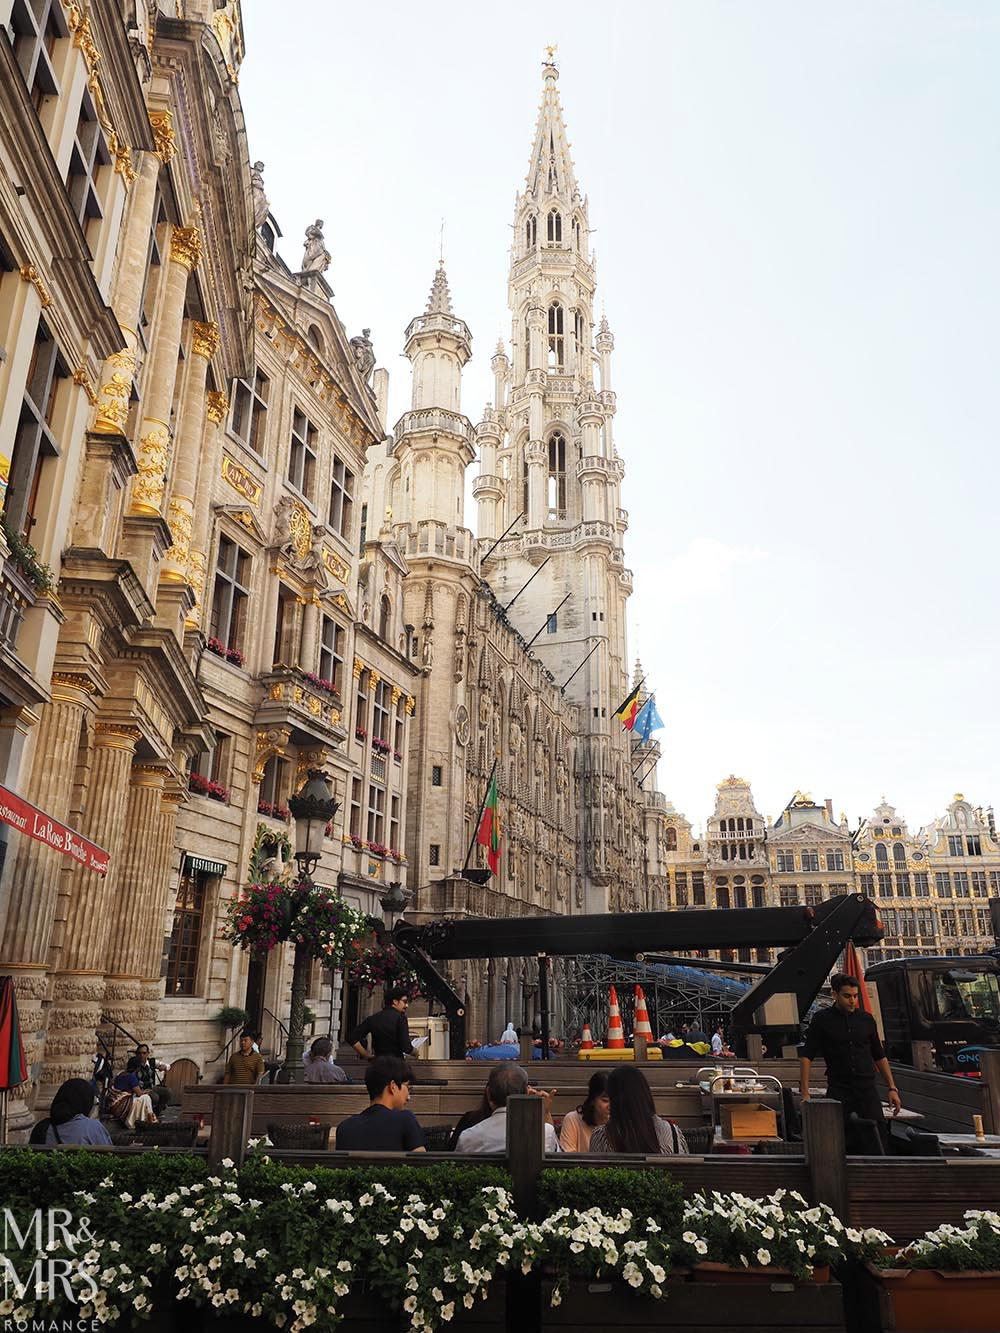 Brussels in 24 hours - travel guide Grand-Place/Grote Markt - MMR